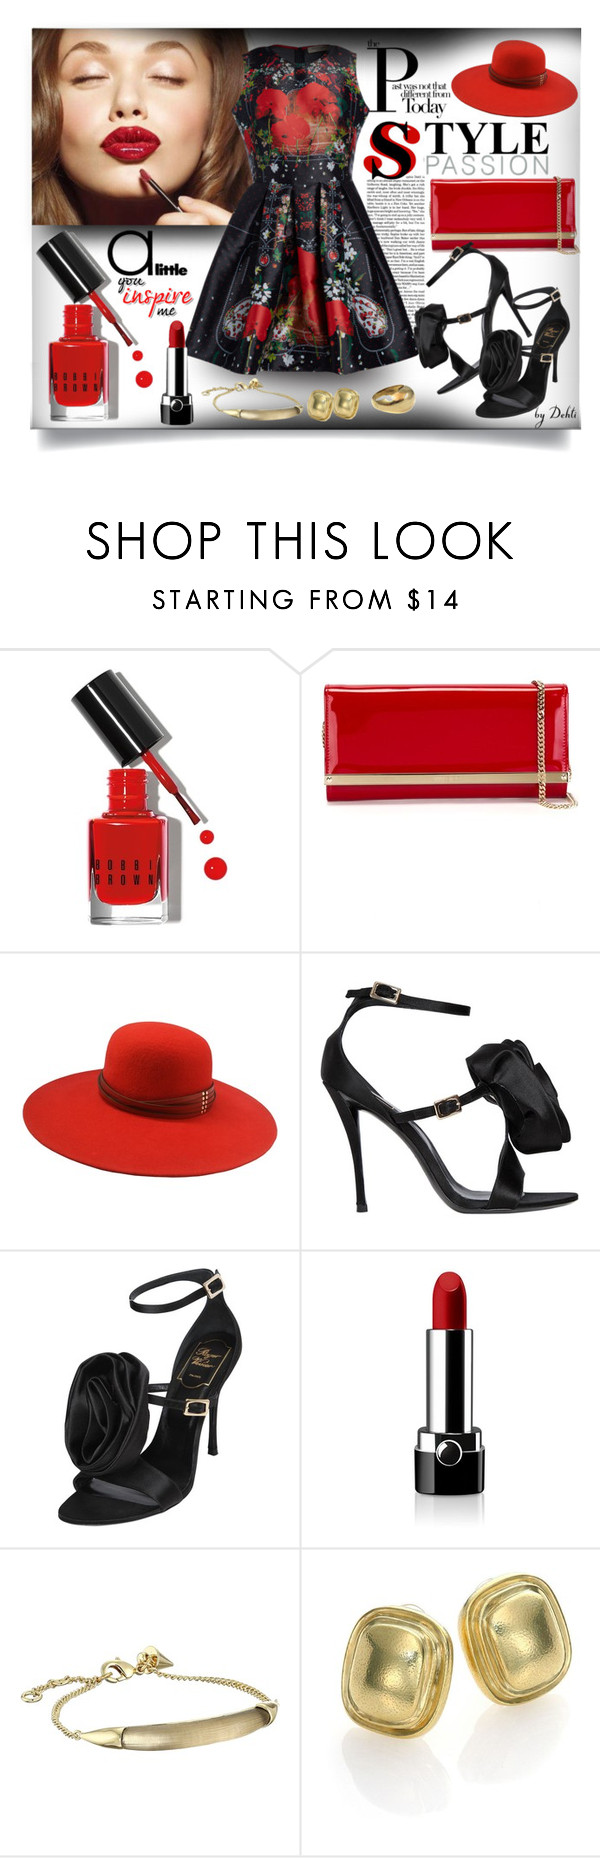 """ Sem Título "" by dehti ❤ liked on Polyvore featuring Trilogy, Mary Kay, Bobbi Brown Cosmetics, Jimmy Choo, The Season Hats, Roger Vivier, Marc Jacobs, Alexis Bittar and Vaubel"